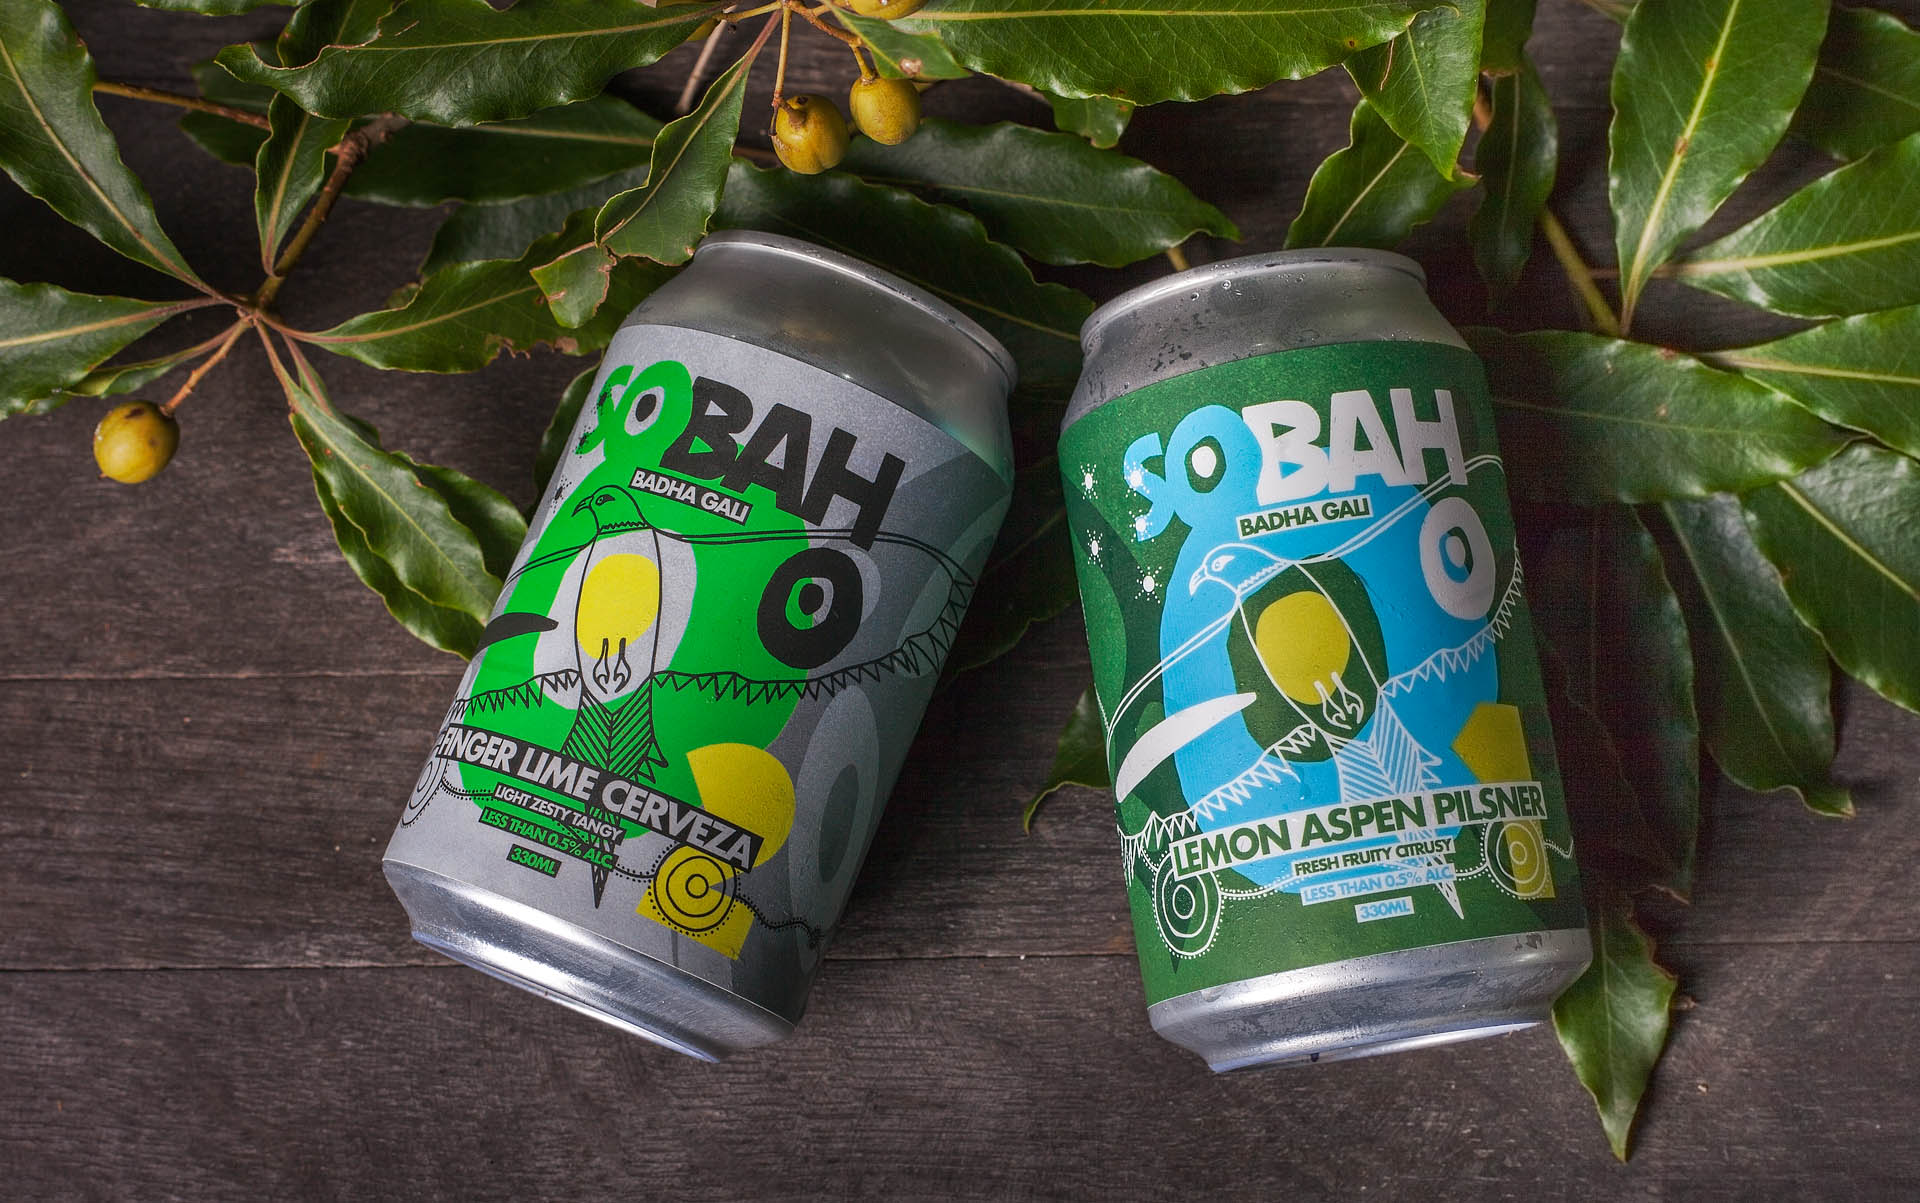 Alcohol-free craft beer launched in Australia